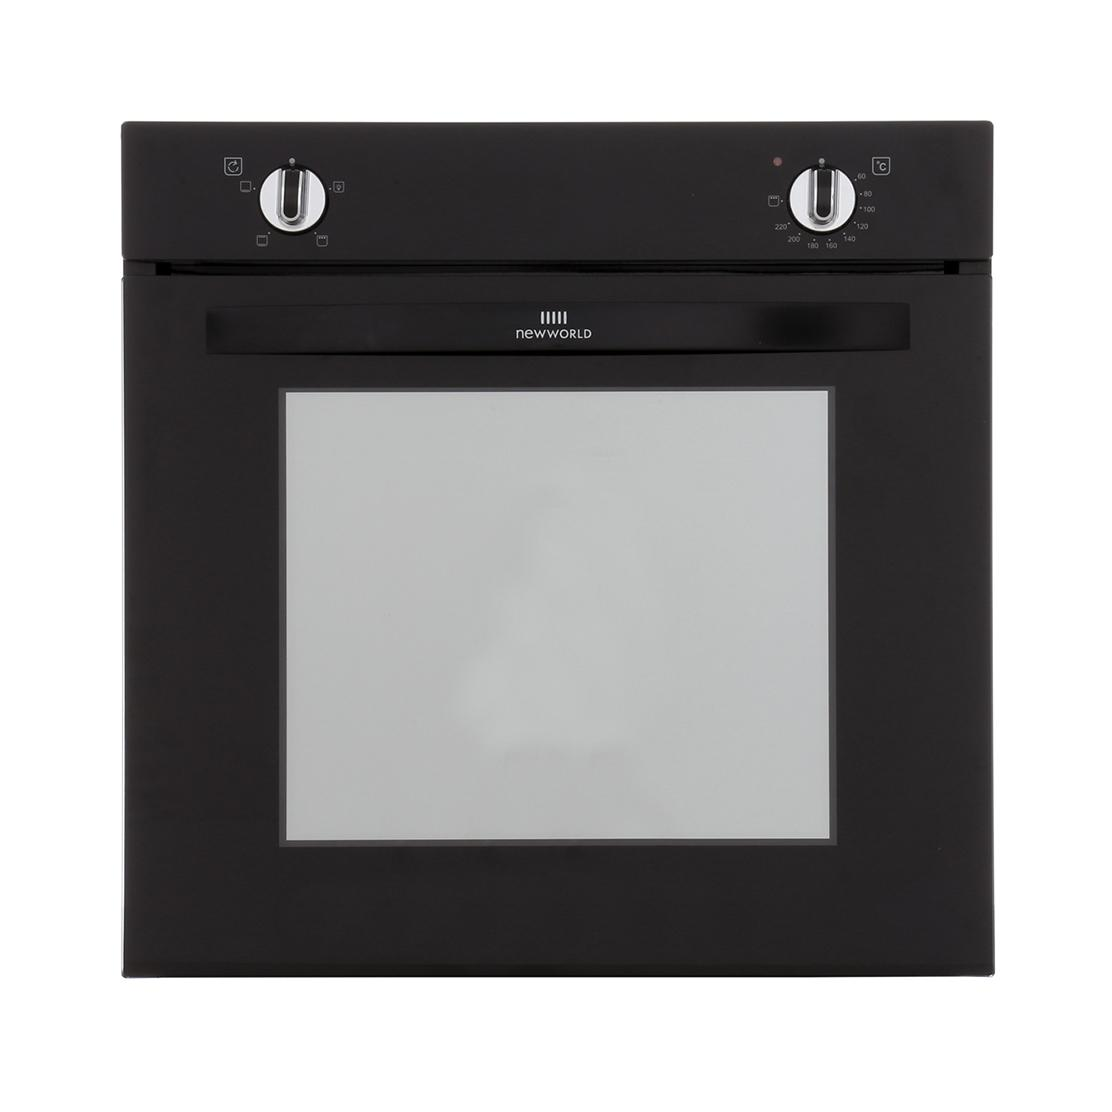 New World NW602V Black Single Built In Electric Oven